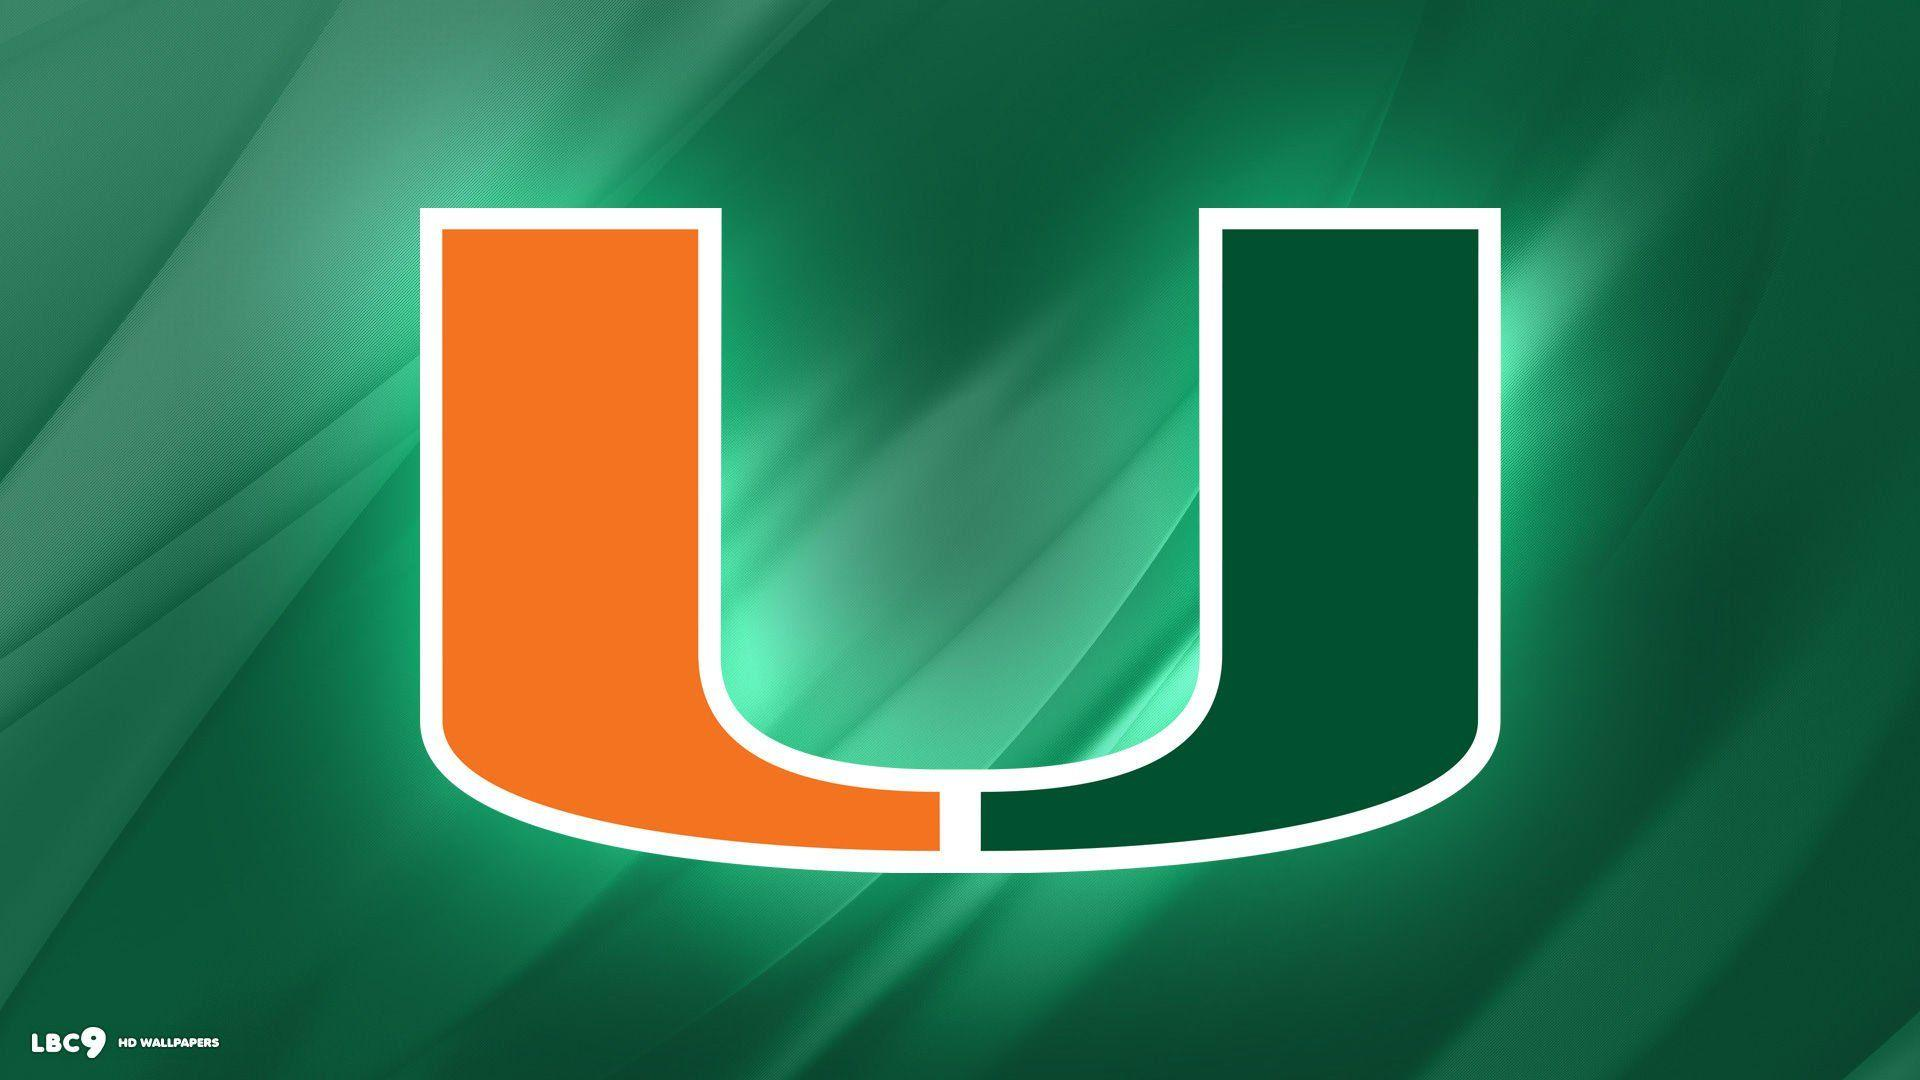 Global Miami Hurricanes Wallpaper Designs and Colors